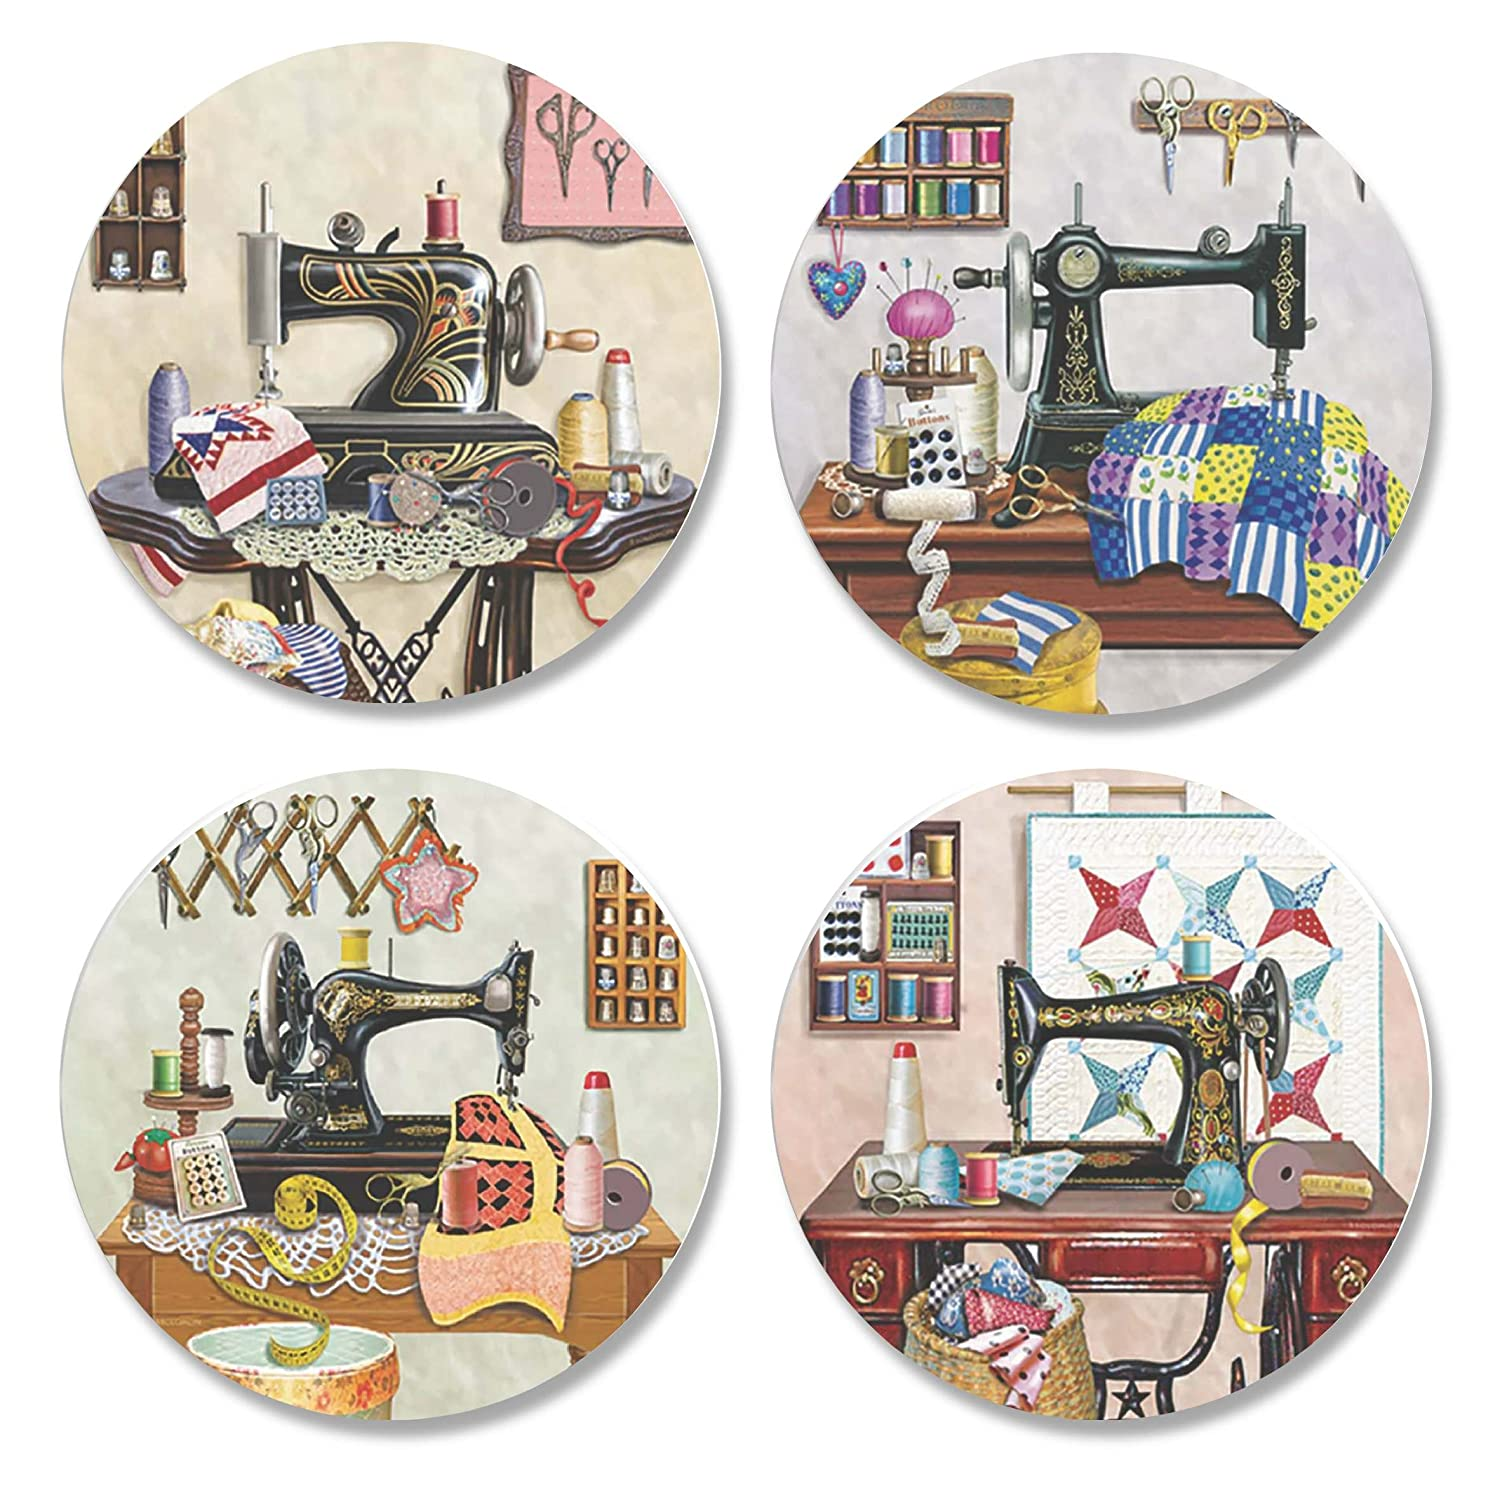 4 Pack Printed Dressmaking Sewing Pattern Weights. Antique Sewing Room designs by artist Rosiland Solomon. Inspired by the BBC Sewing Bee. (50mm Diameter) Mrs DIY